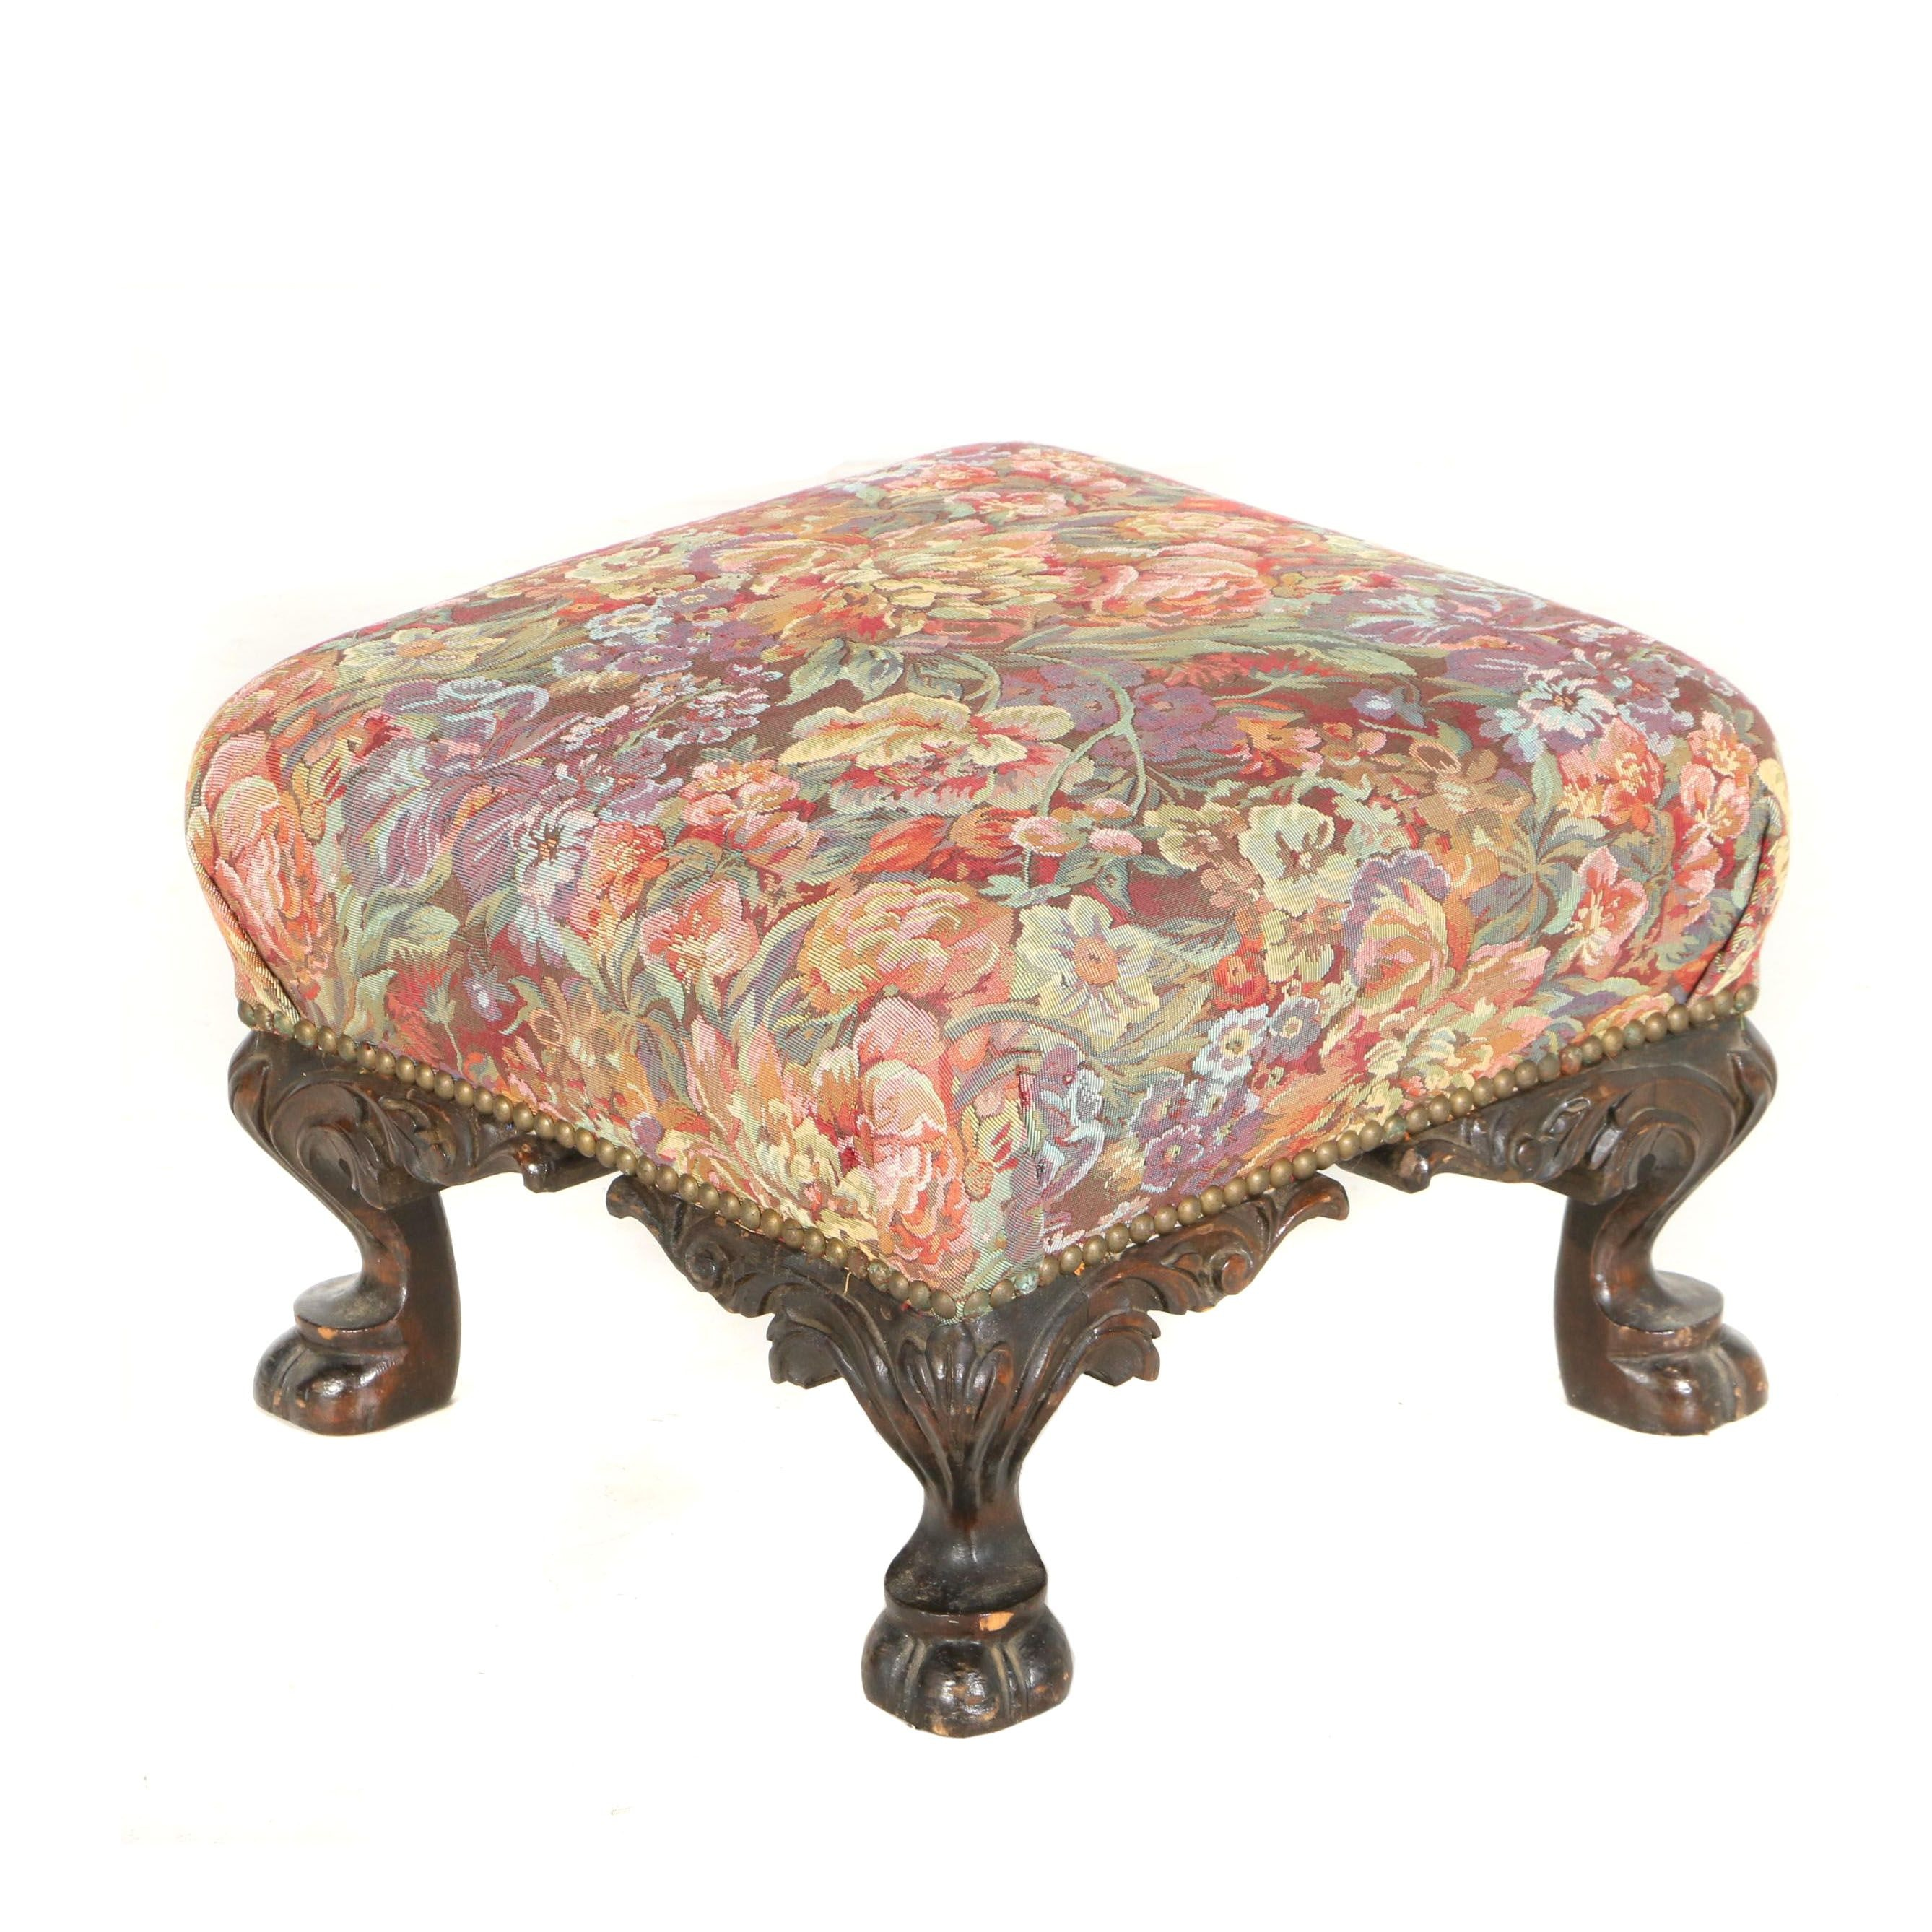 Late Victorian Walnut-Stained Footstool, Late 19th/Early 20th Century